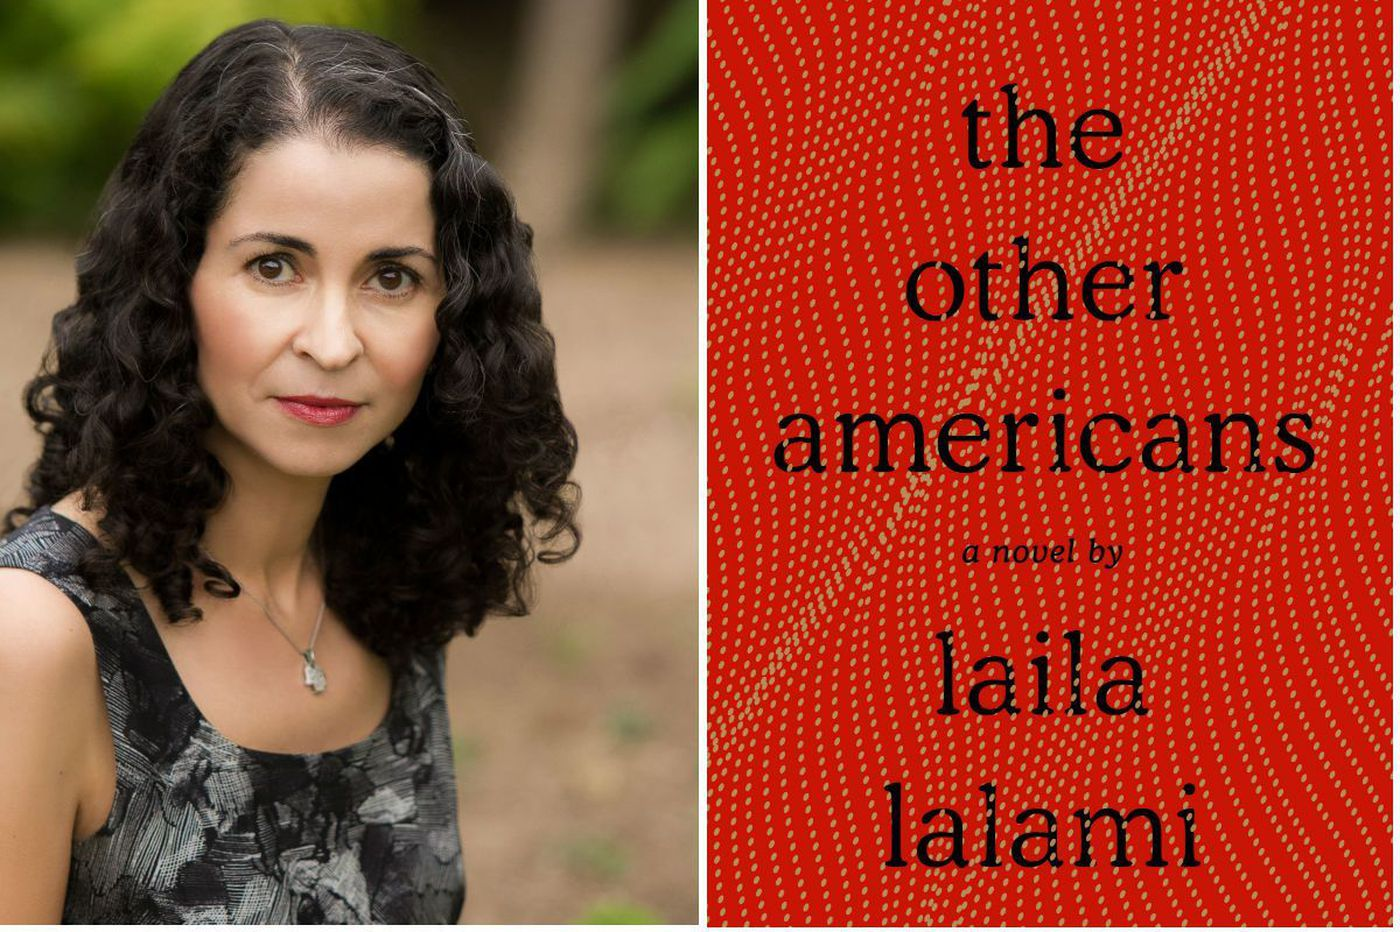 'The Other Americans' by Laila Lalami: Mystery and immigrant story, told by an other